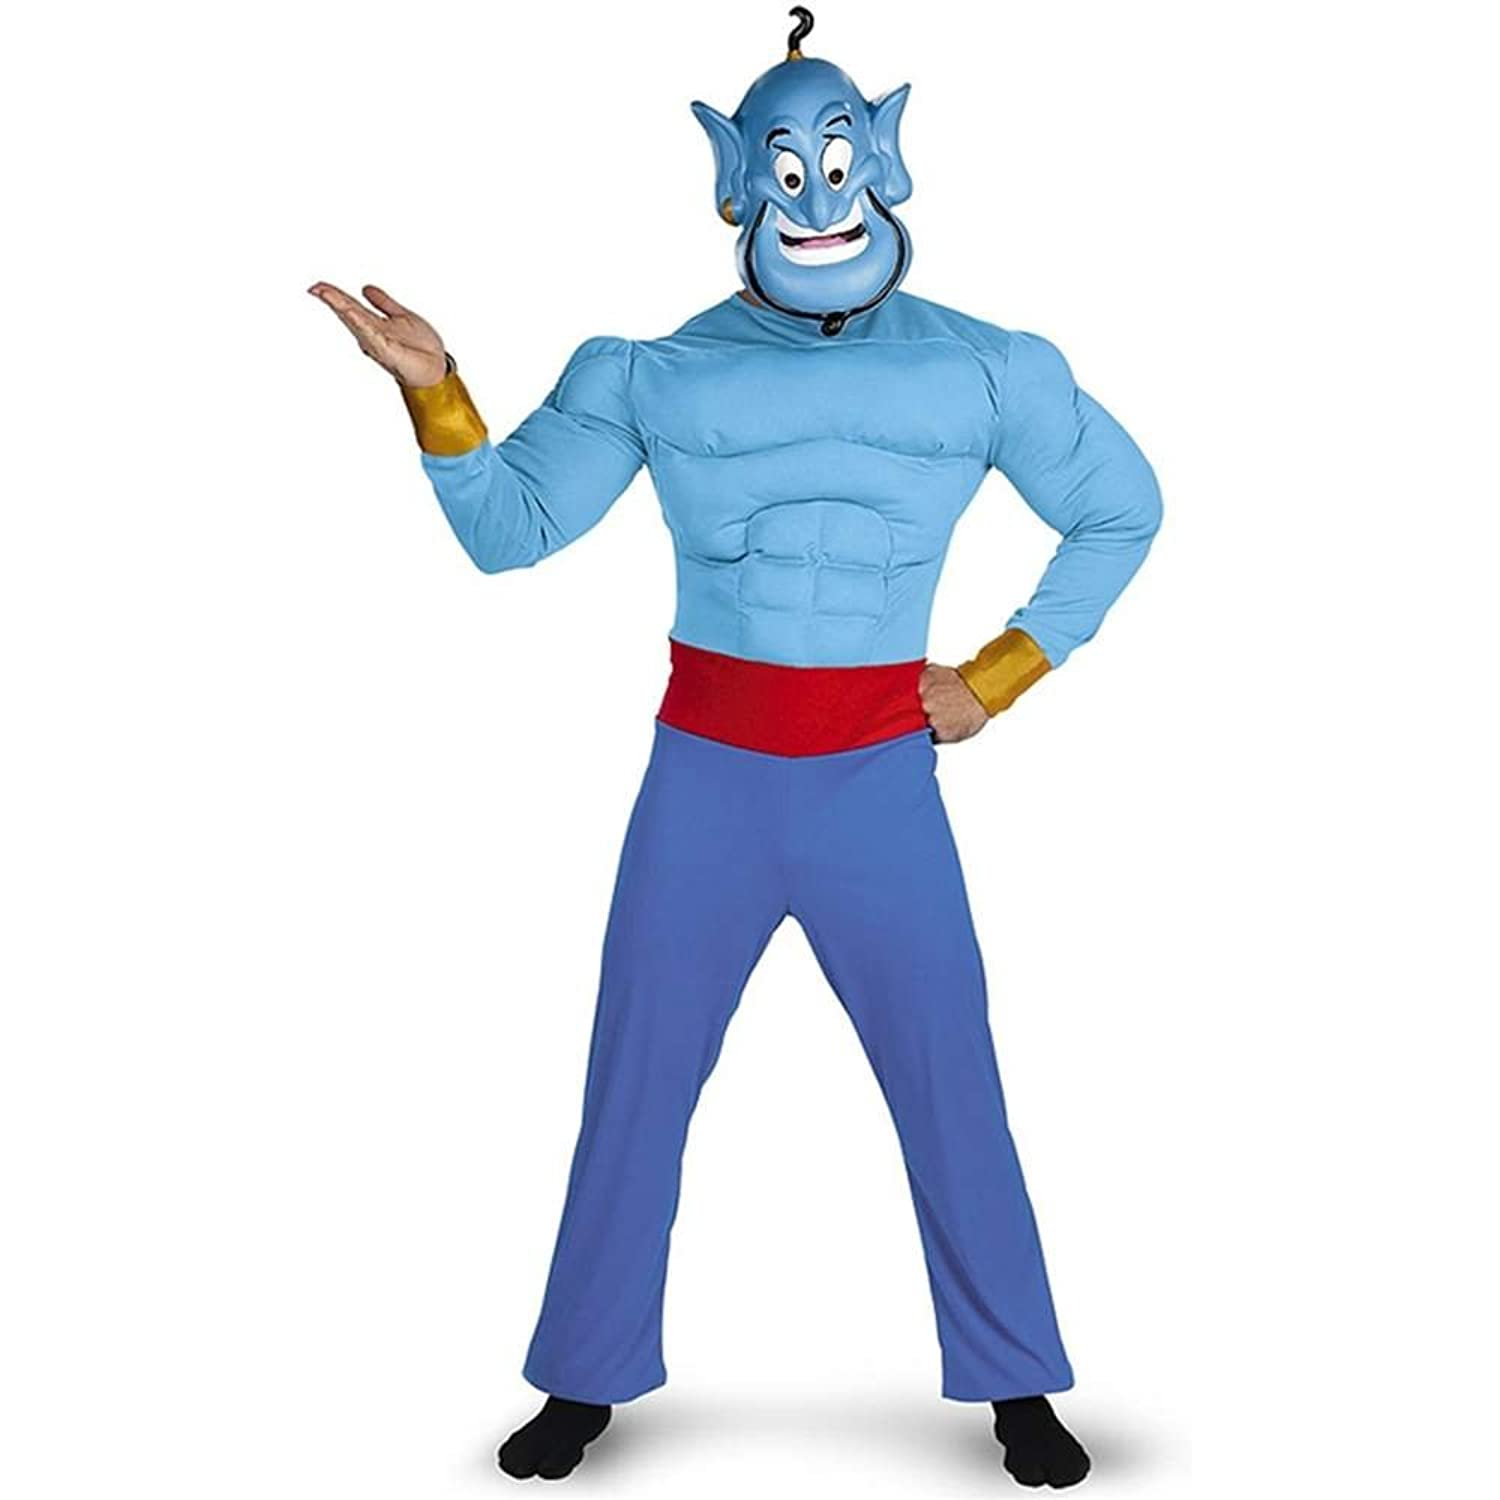 sc 1 st  Amazon.com & Amazon.com: Aladdin - Genie Adult Muscle Chest Costume: Clothing